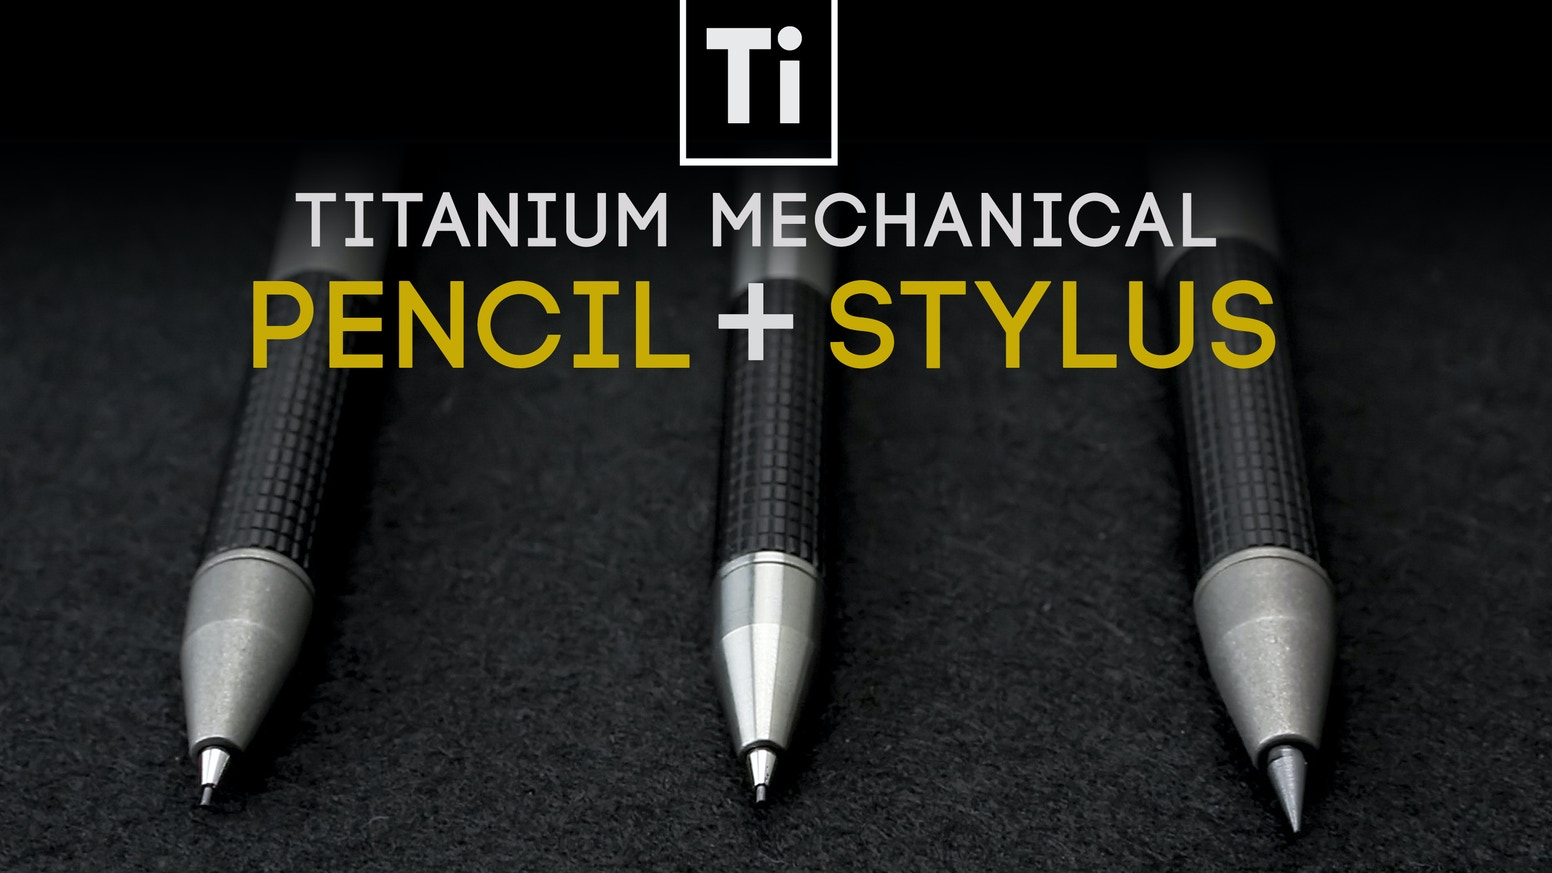 Refined Ti Mechanical Pencils w/ interchangeable stylus caps & hidden erasers + Free Shipping!